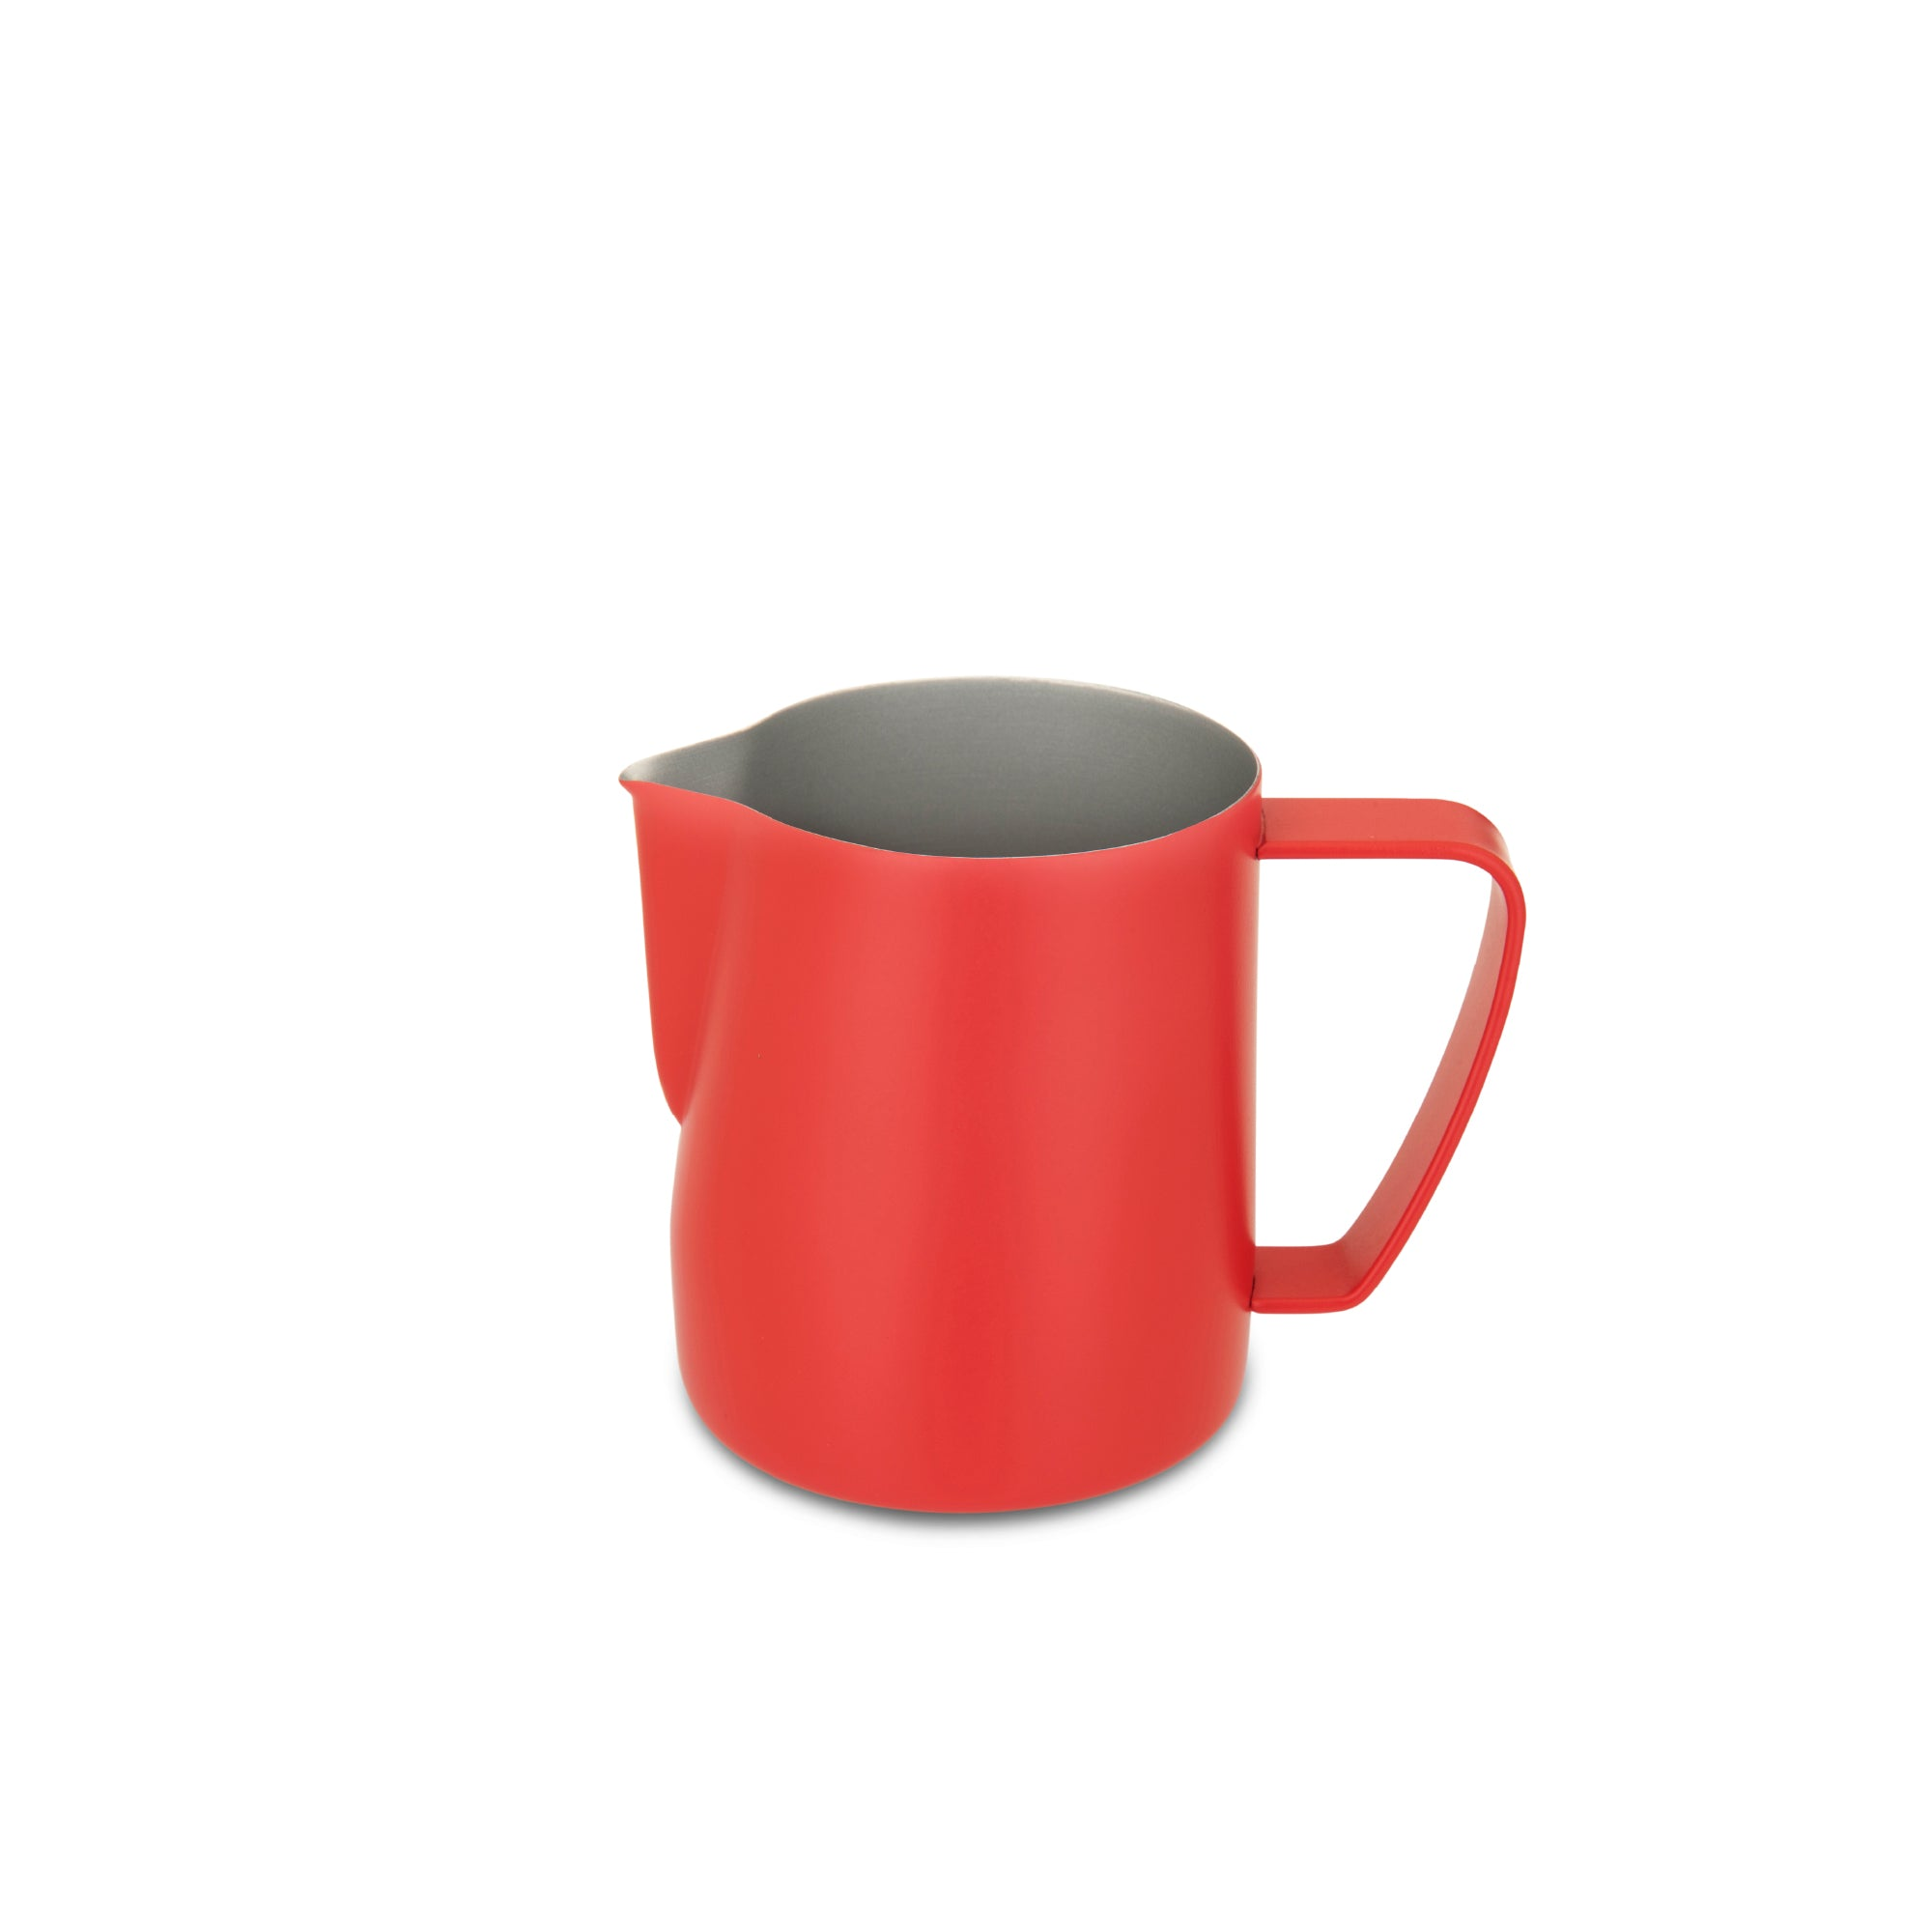 EspressoWorks Stainless Steel Milk Frothing Jug - Matte Red (350ml)